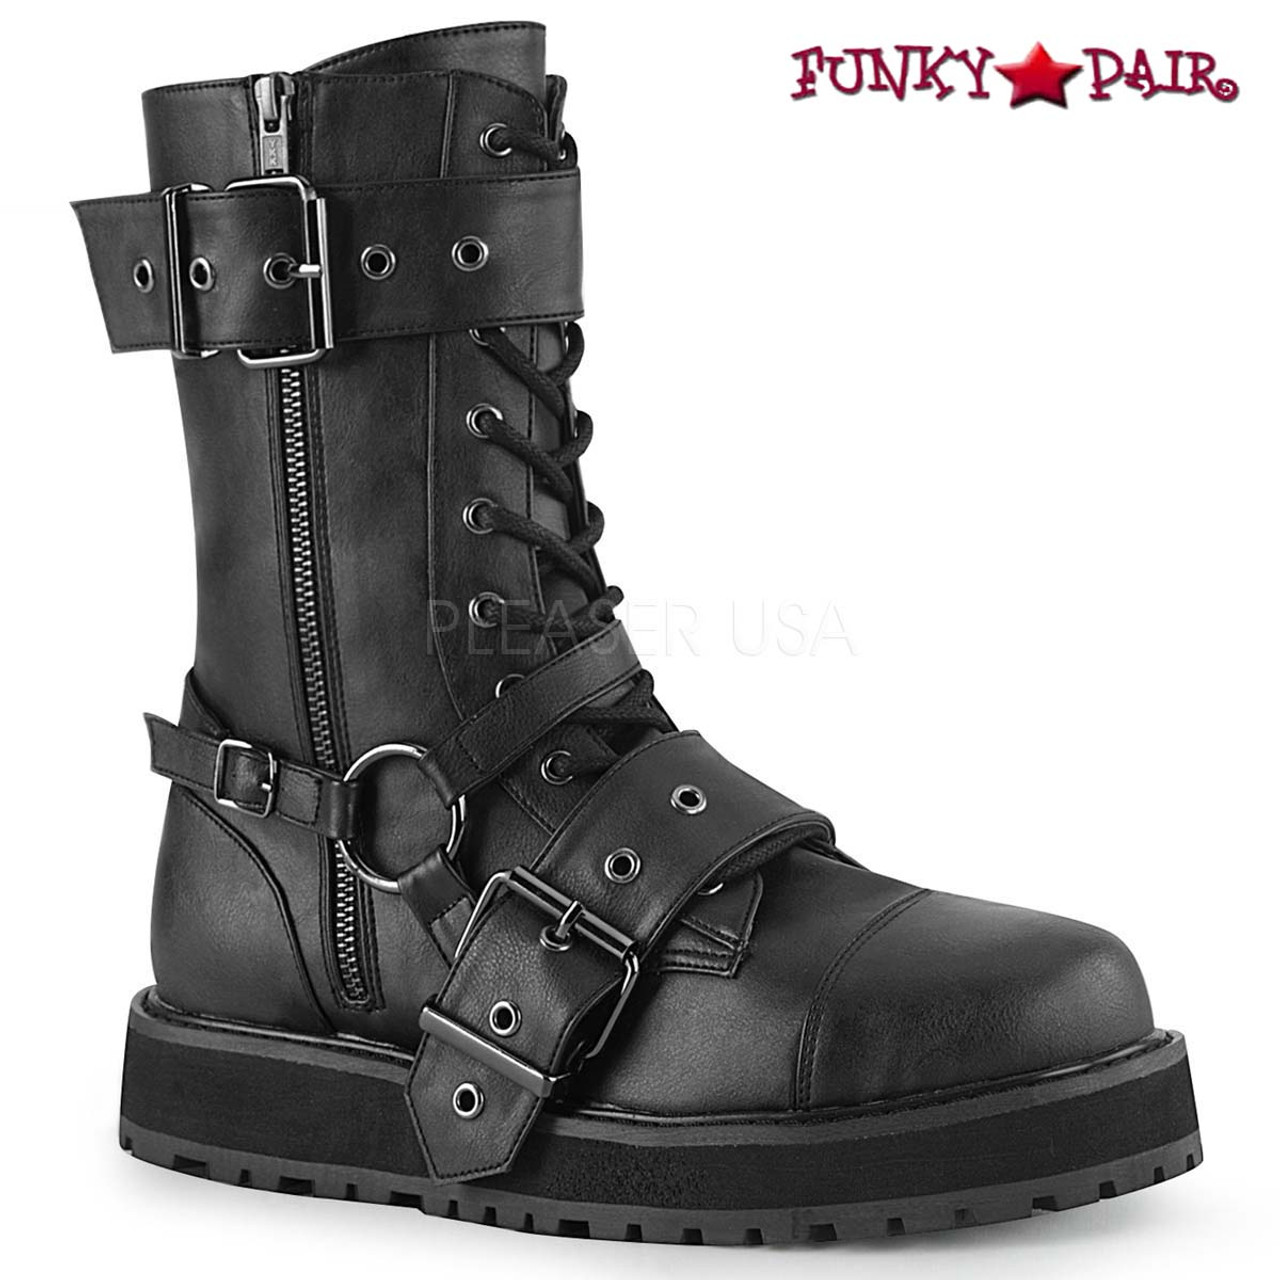 Men's DemoniaValor Boots Strap Harness 220 Punk 3A4j5RL